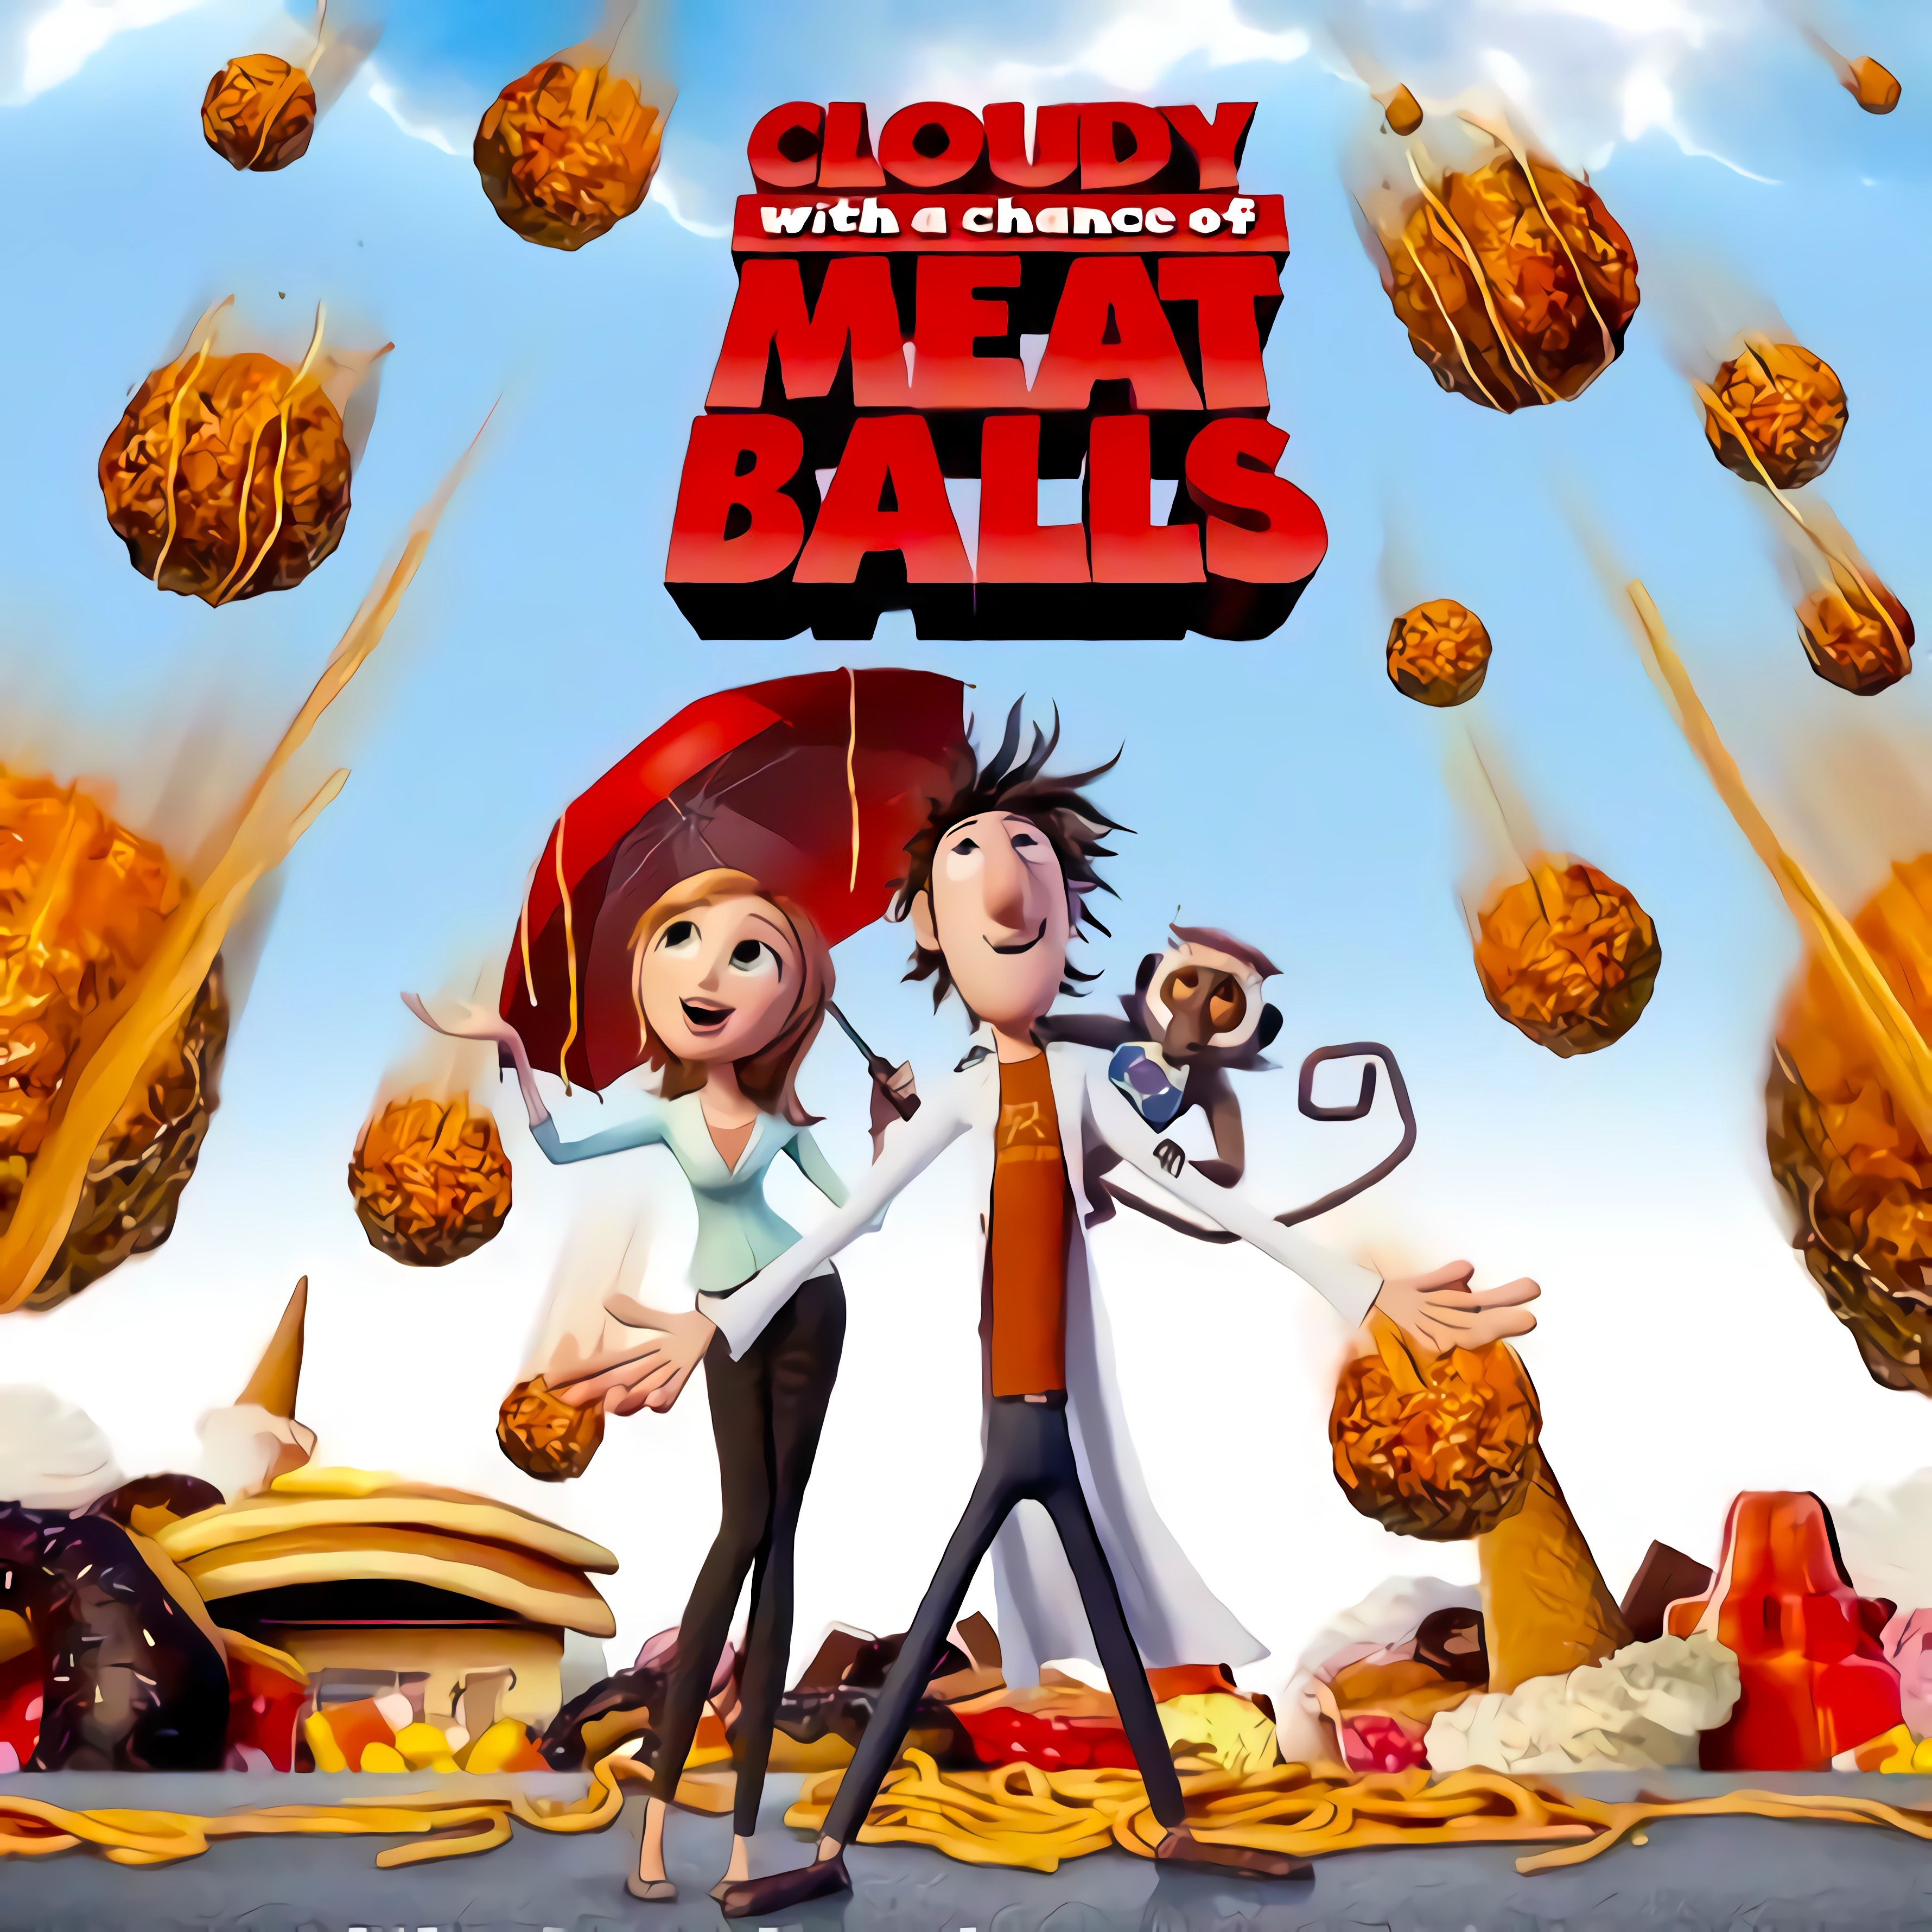 It's Raining Man - Cloudy With A Chance of Meatballs